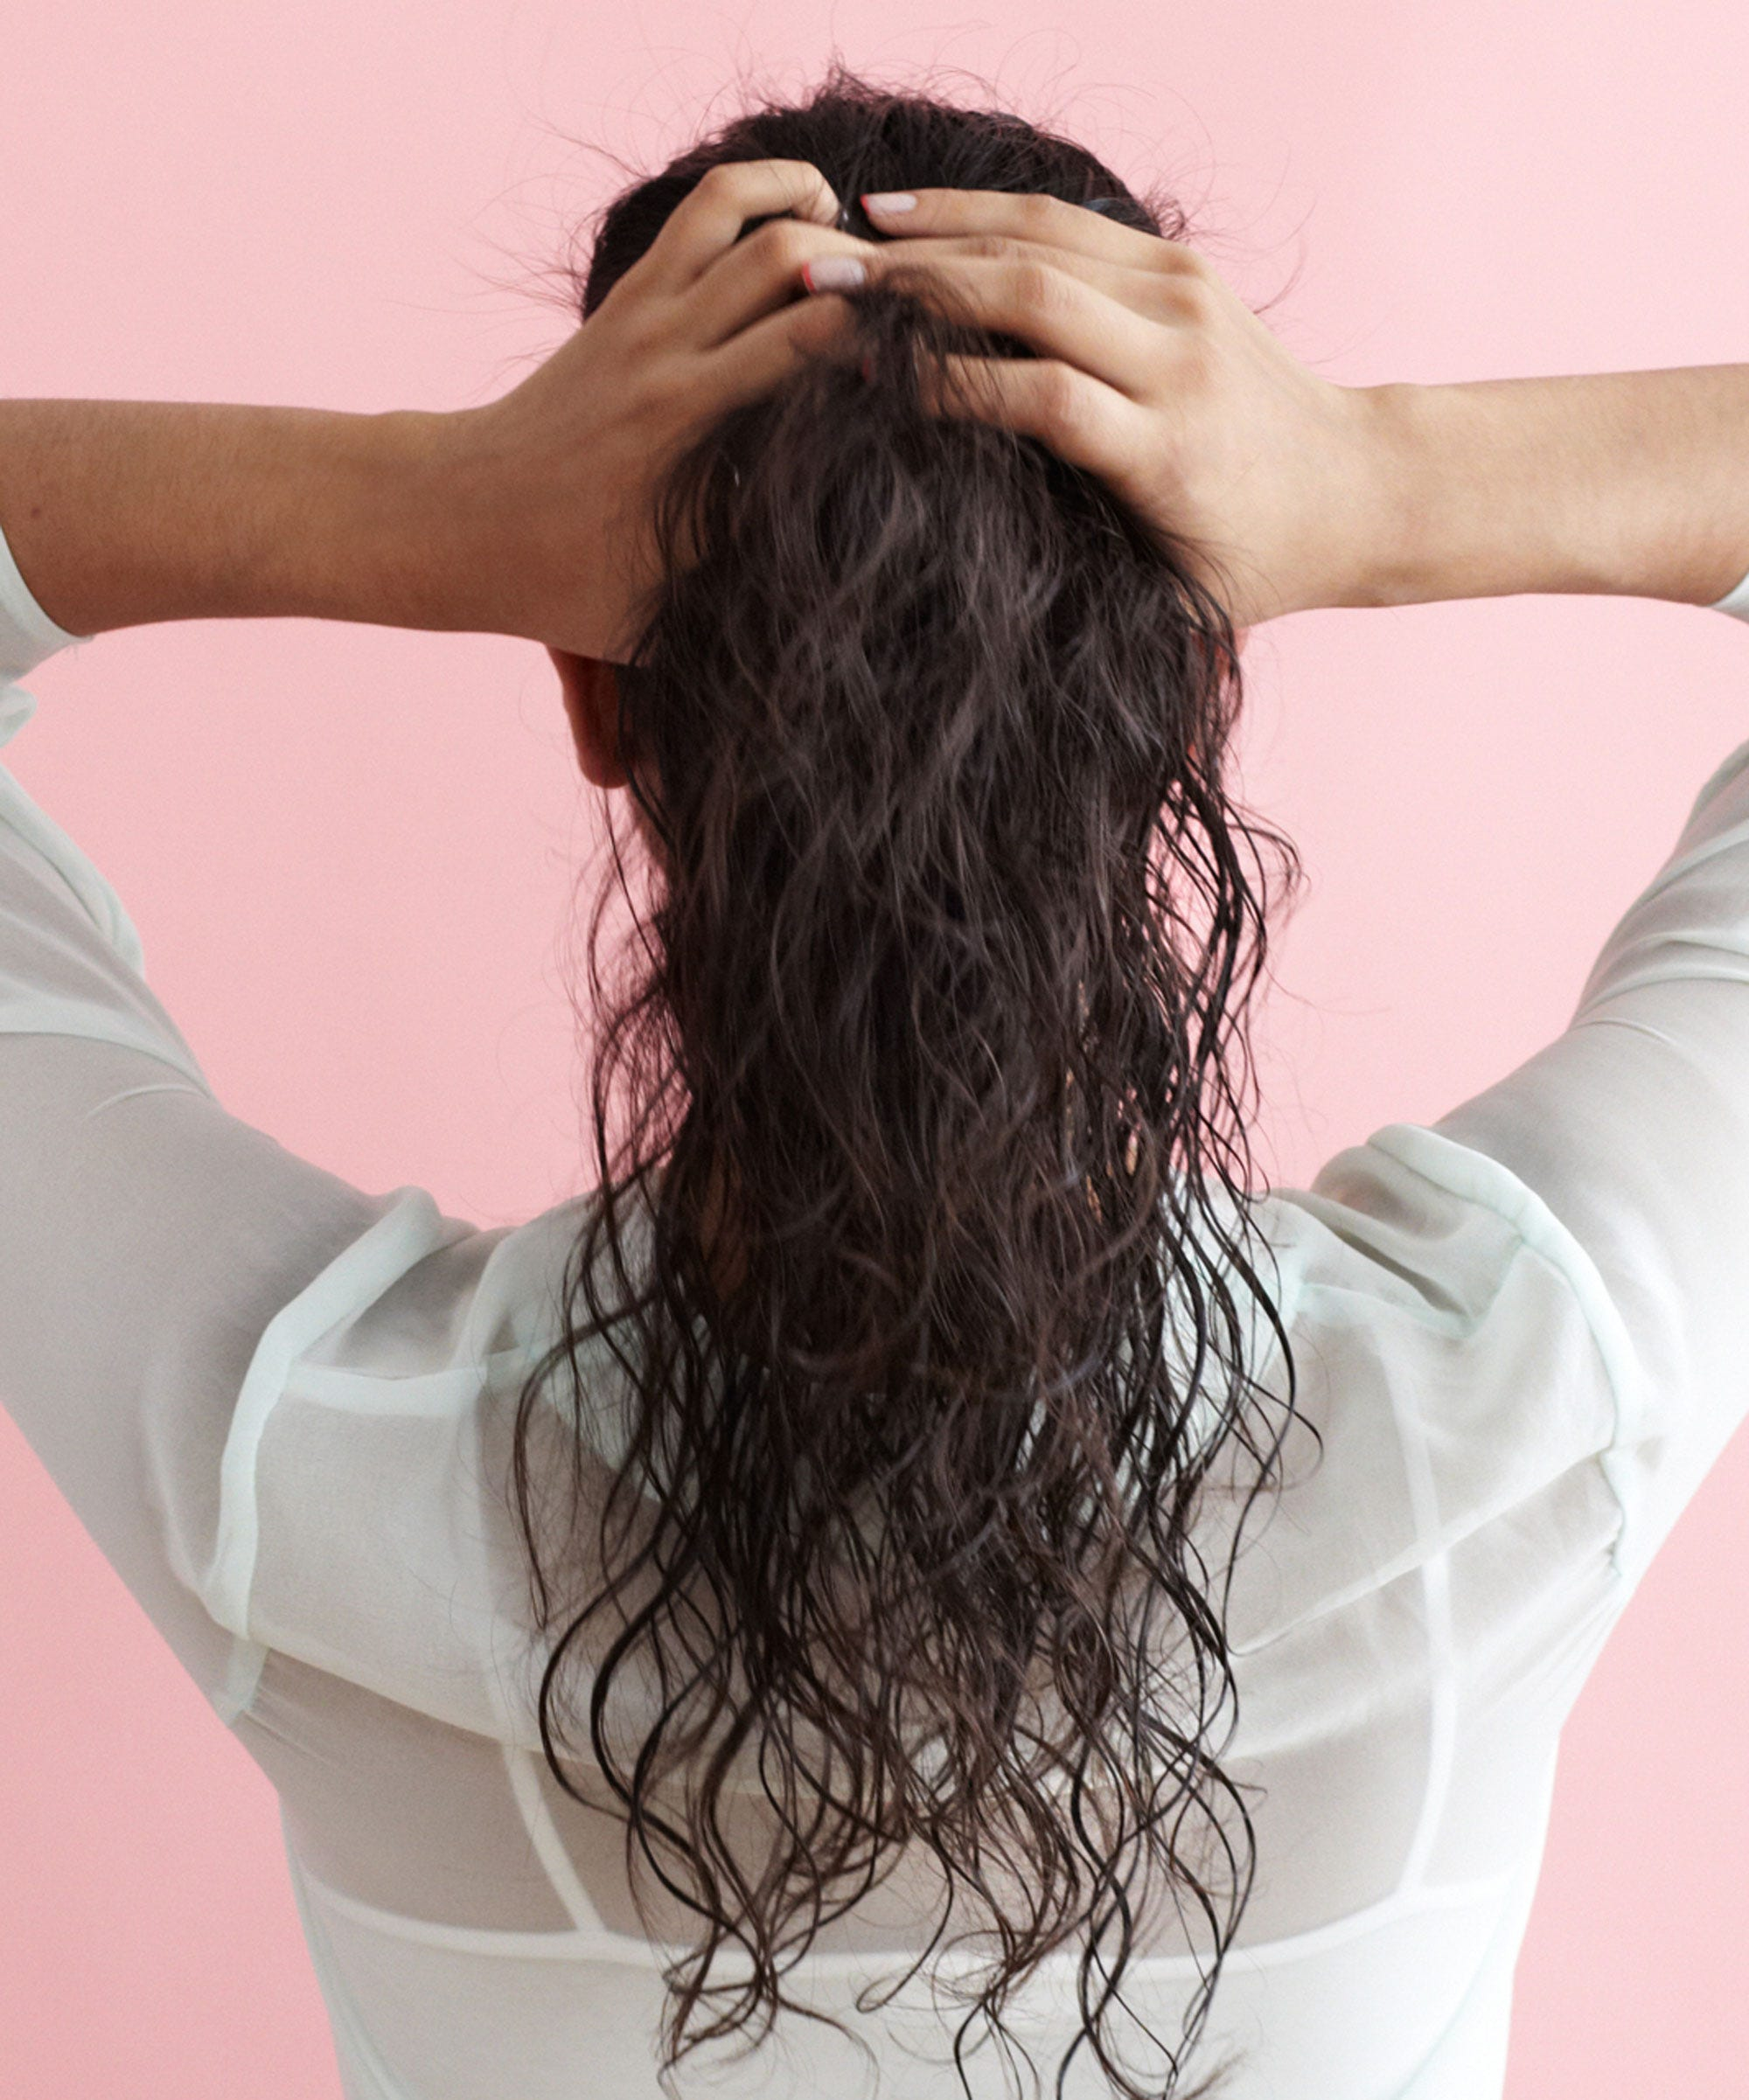 Pros Swear By This For Better Hair In 30 Days